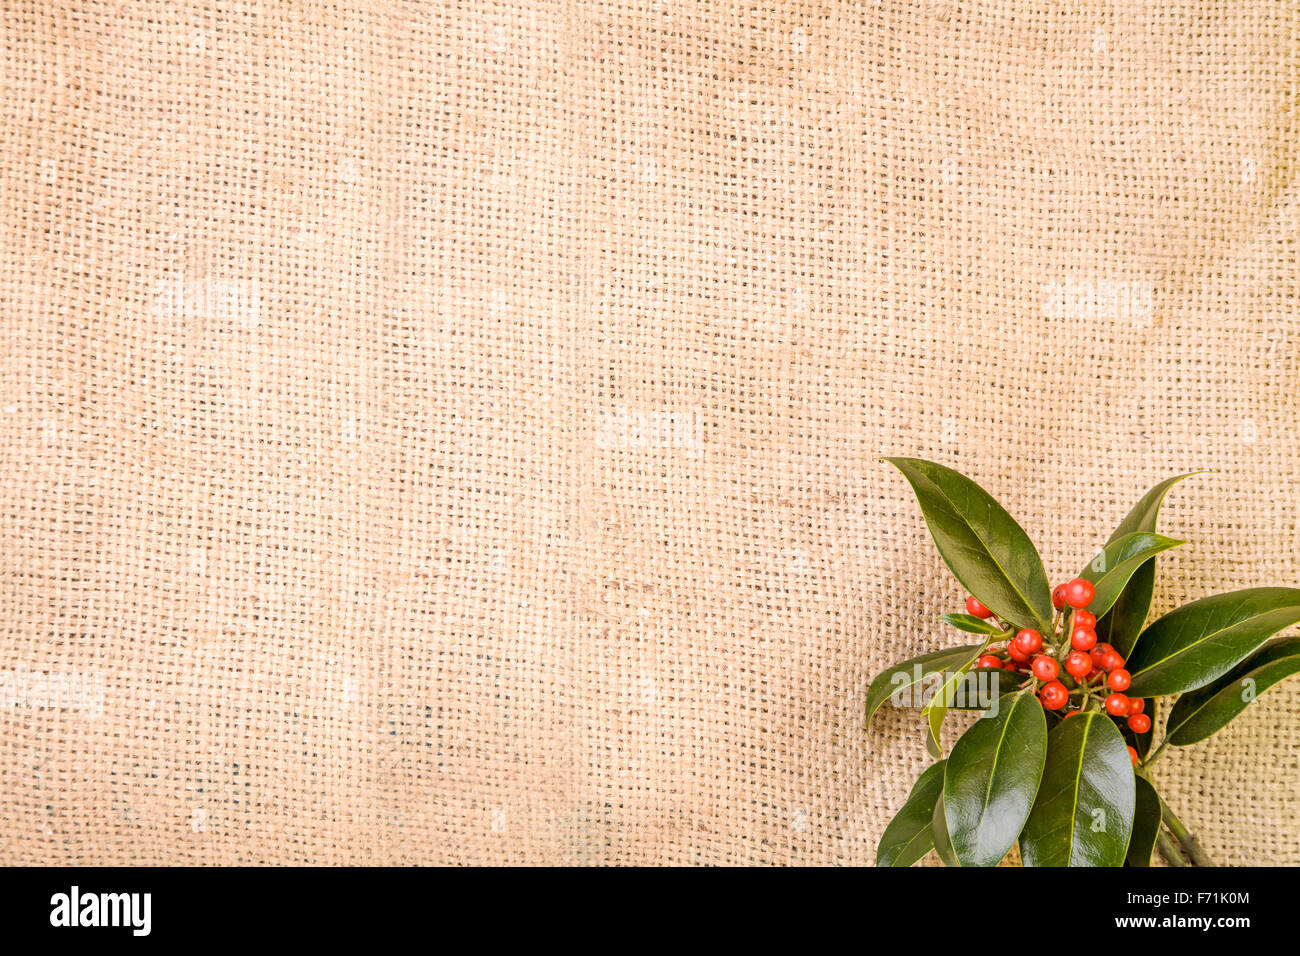 Sprig of Holly on a Hessian sack - Stock Image